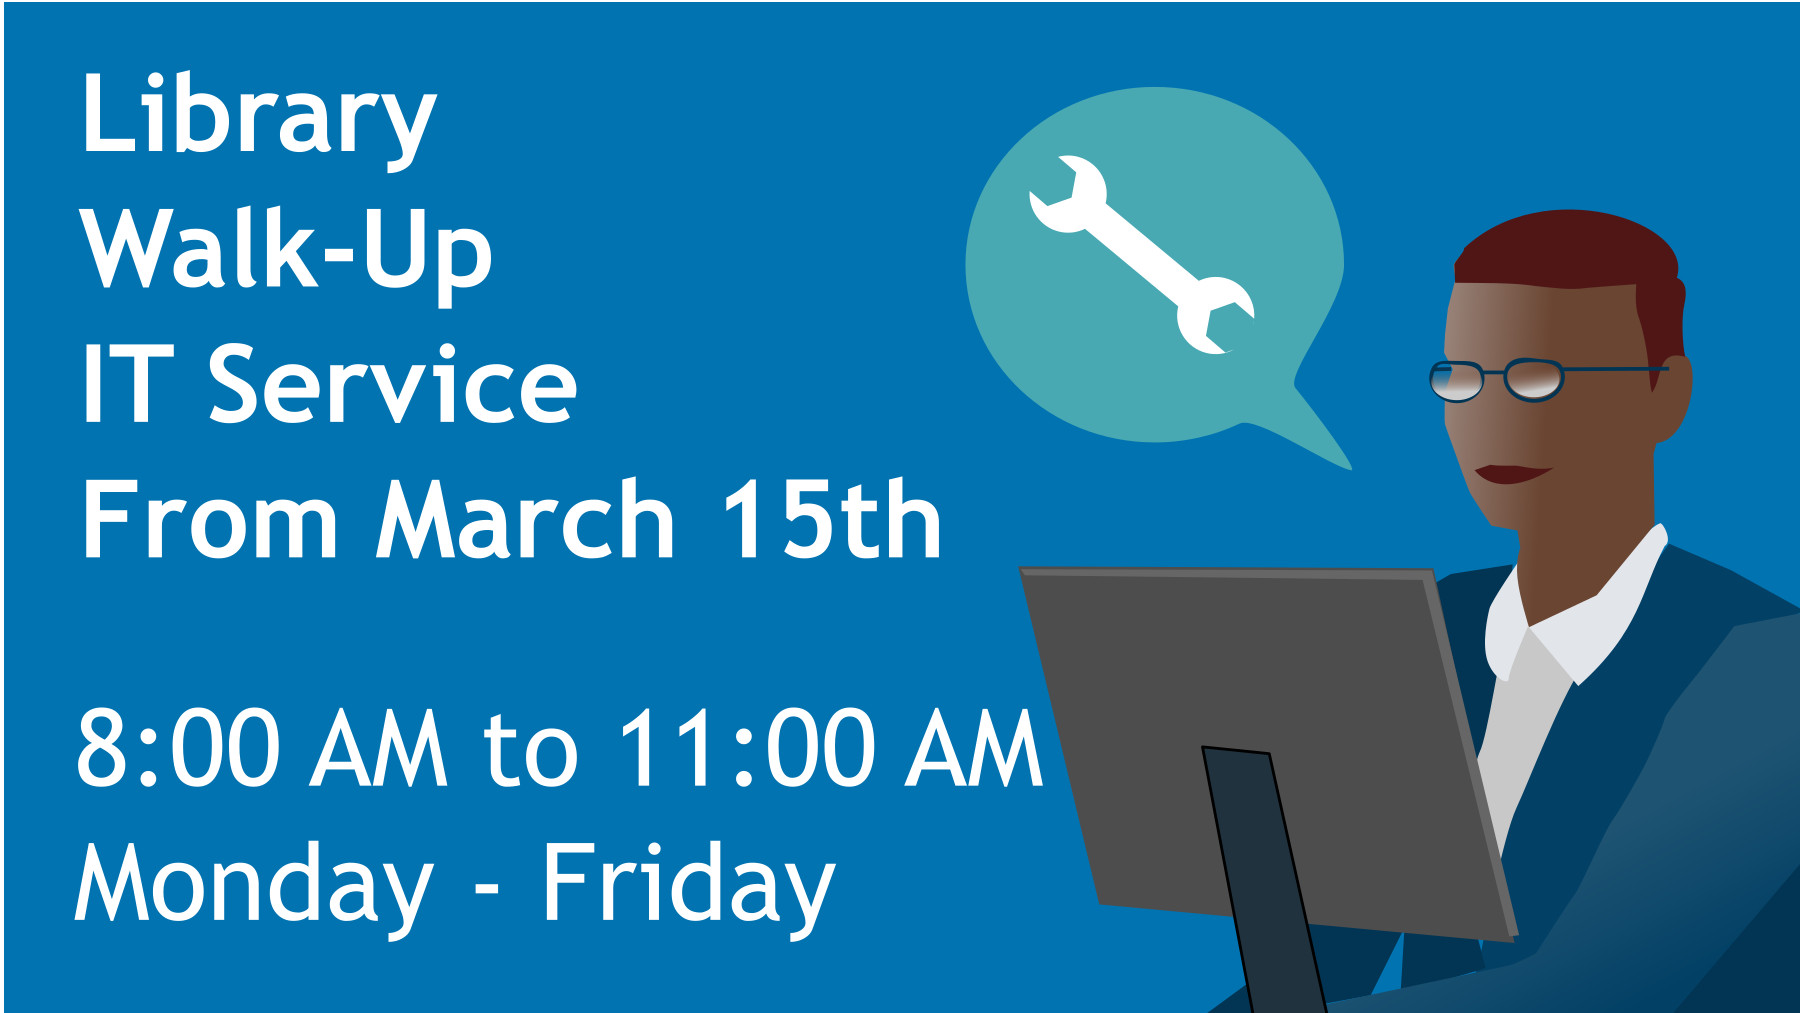 """Image shows an IT sitting in from of a computer with text """"Library Walk-Up IT Service From March 15th 8AM to 11AM Monday - Friday"""""""